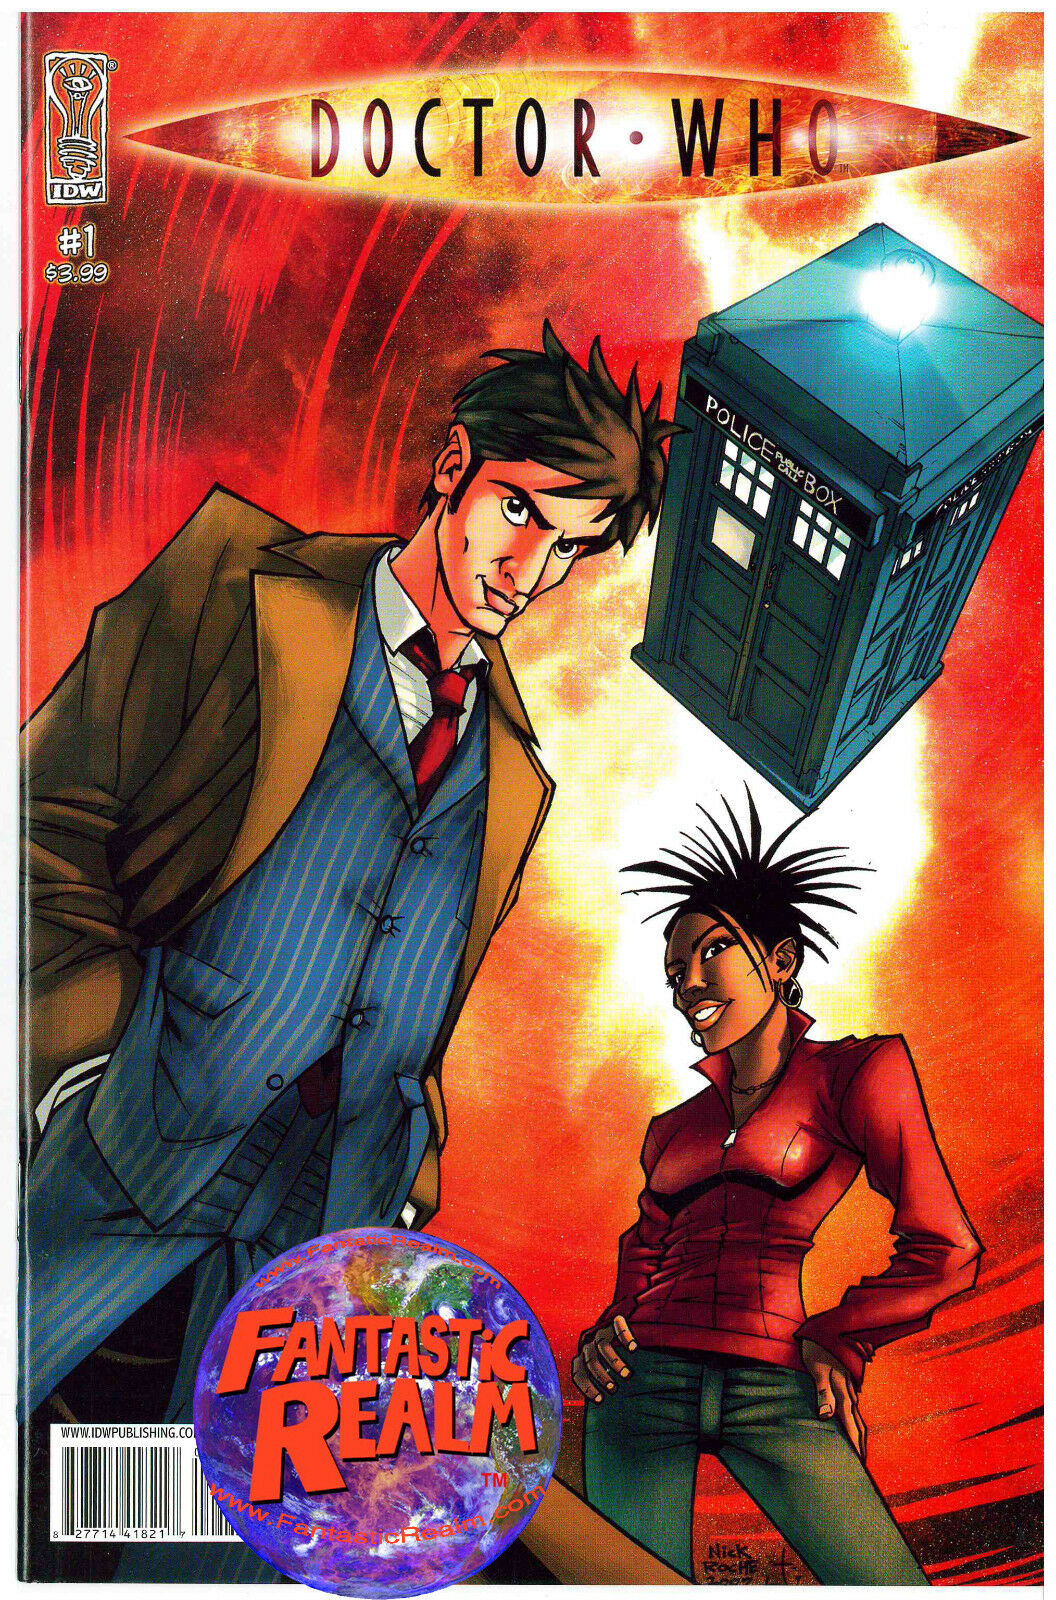 DOCTOR WHO #1, 2, 3 & 4 IDW COMICS